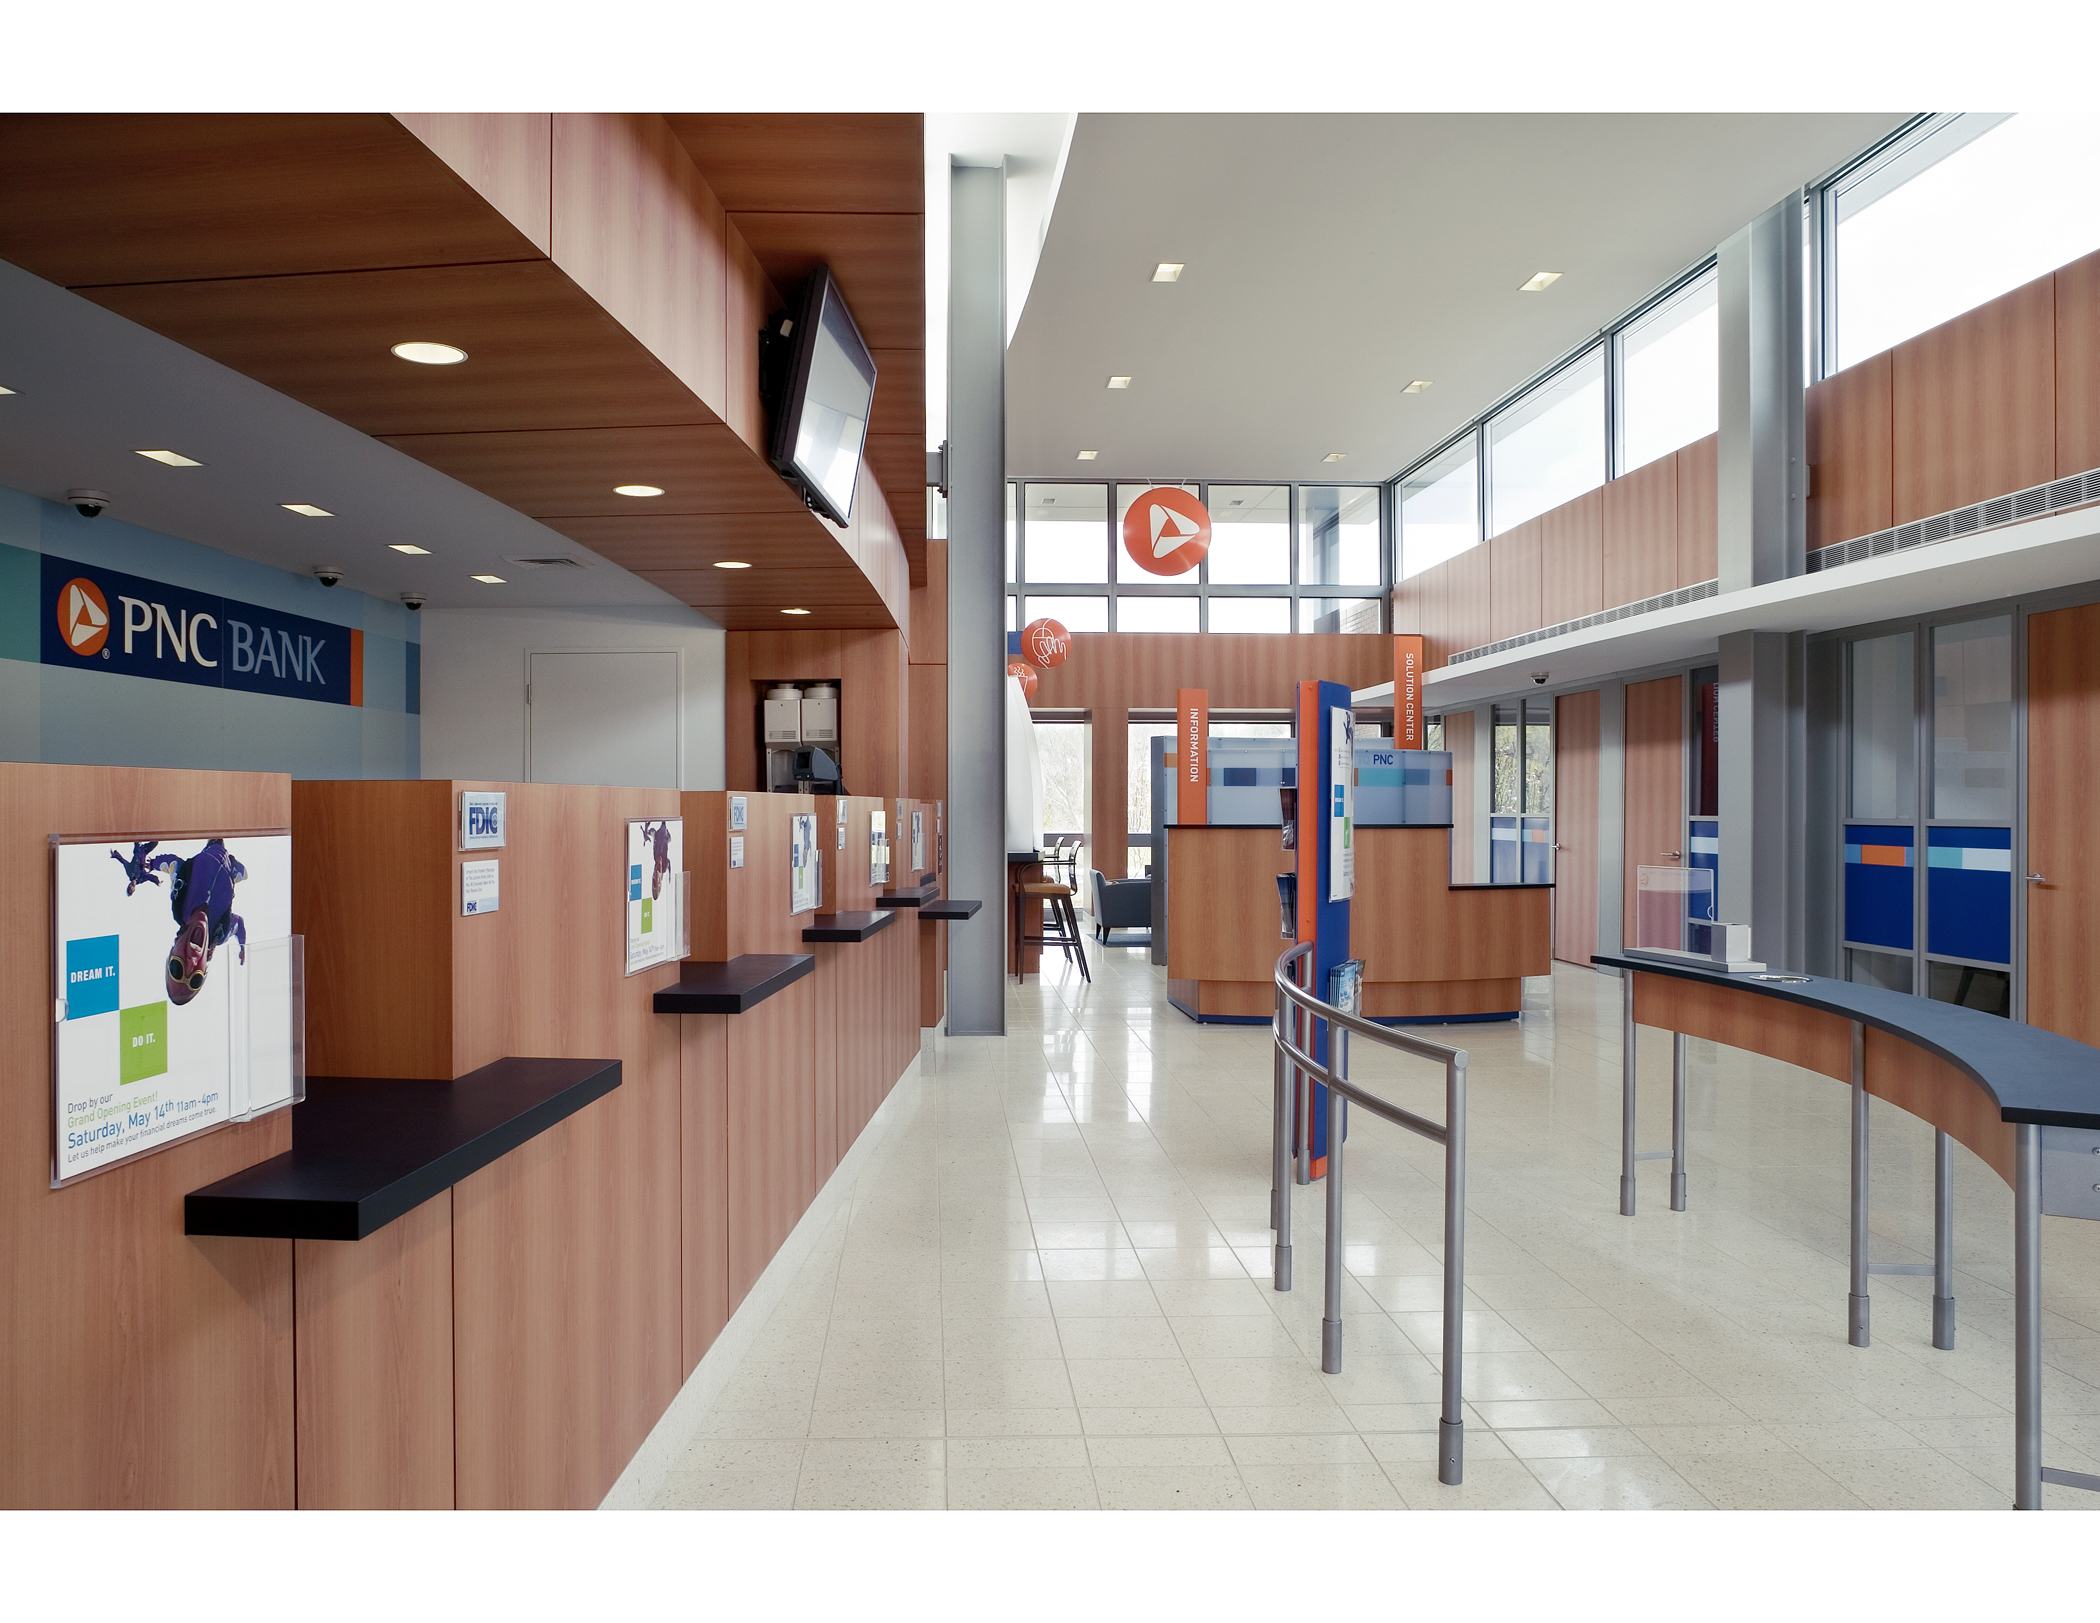 pnc bank locations greenville sc